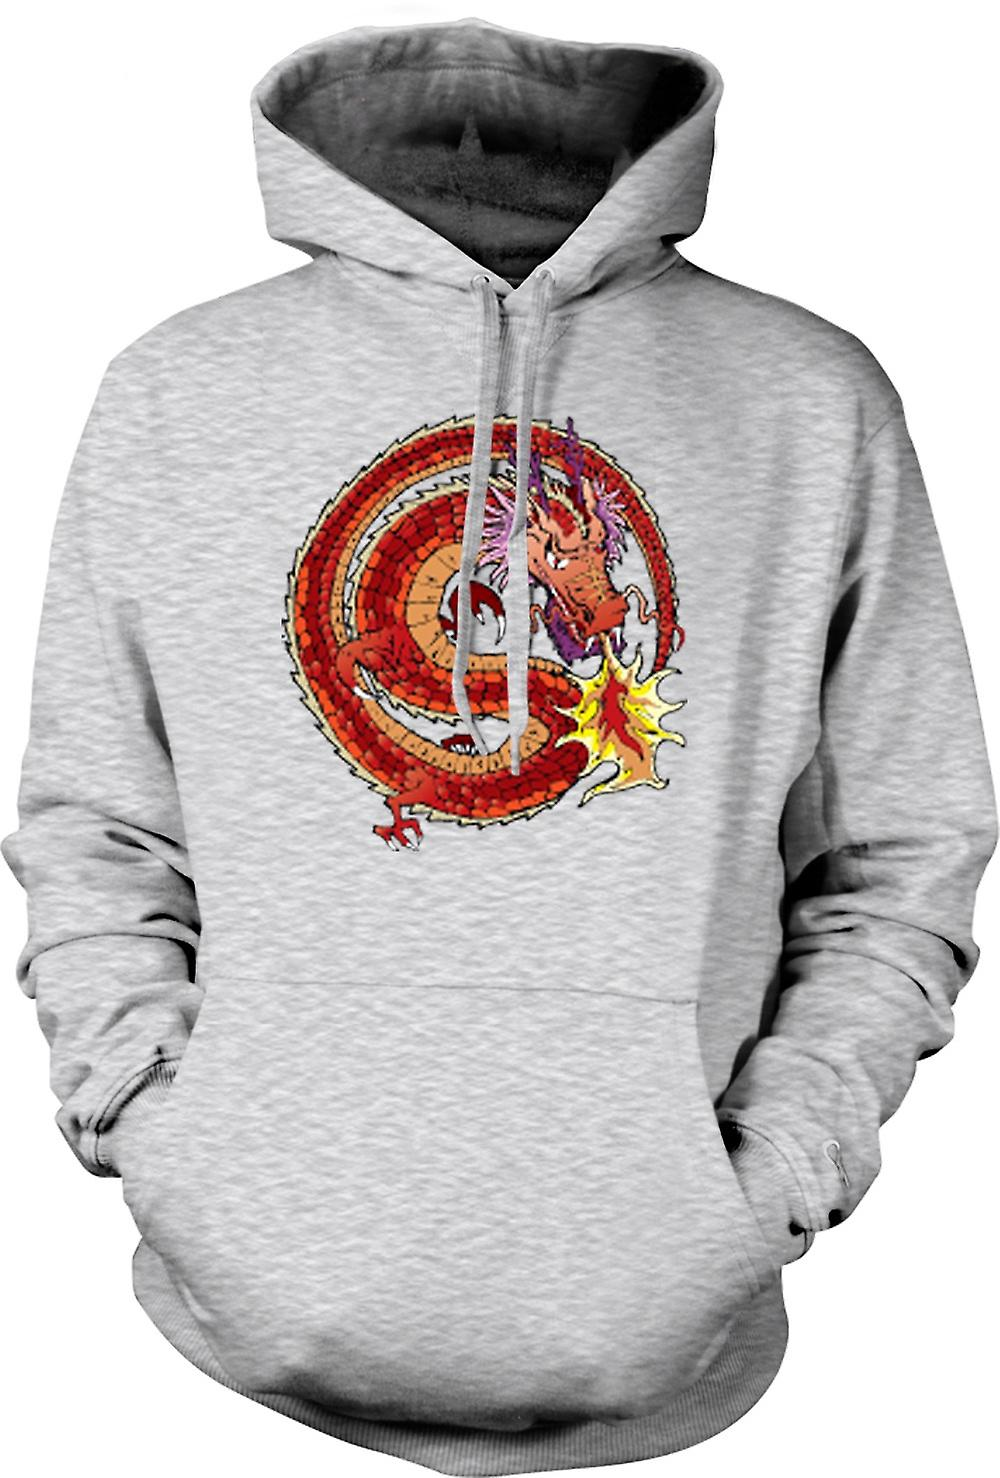 Mens Hoodie - Chinese Dragon Traditional Design